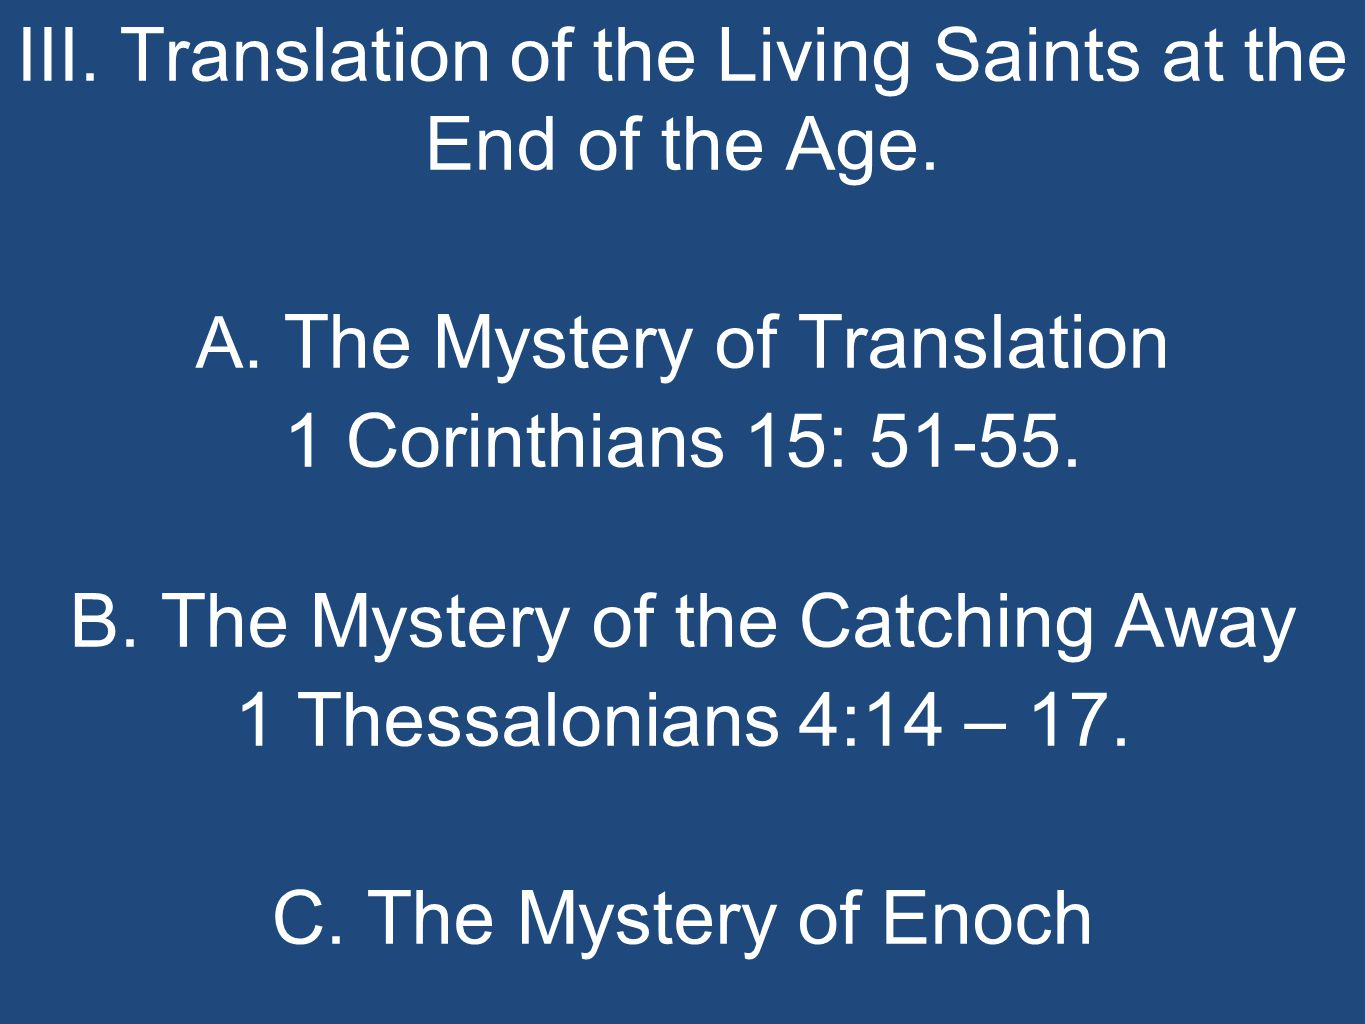 III. Translation of the Living Saints at the End of the Age.